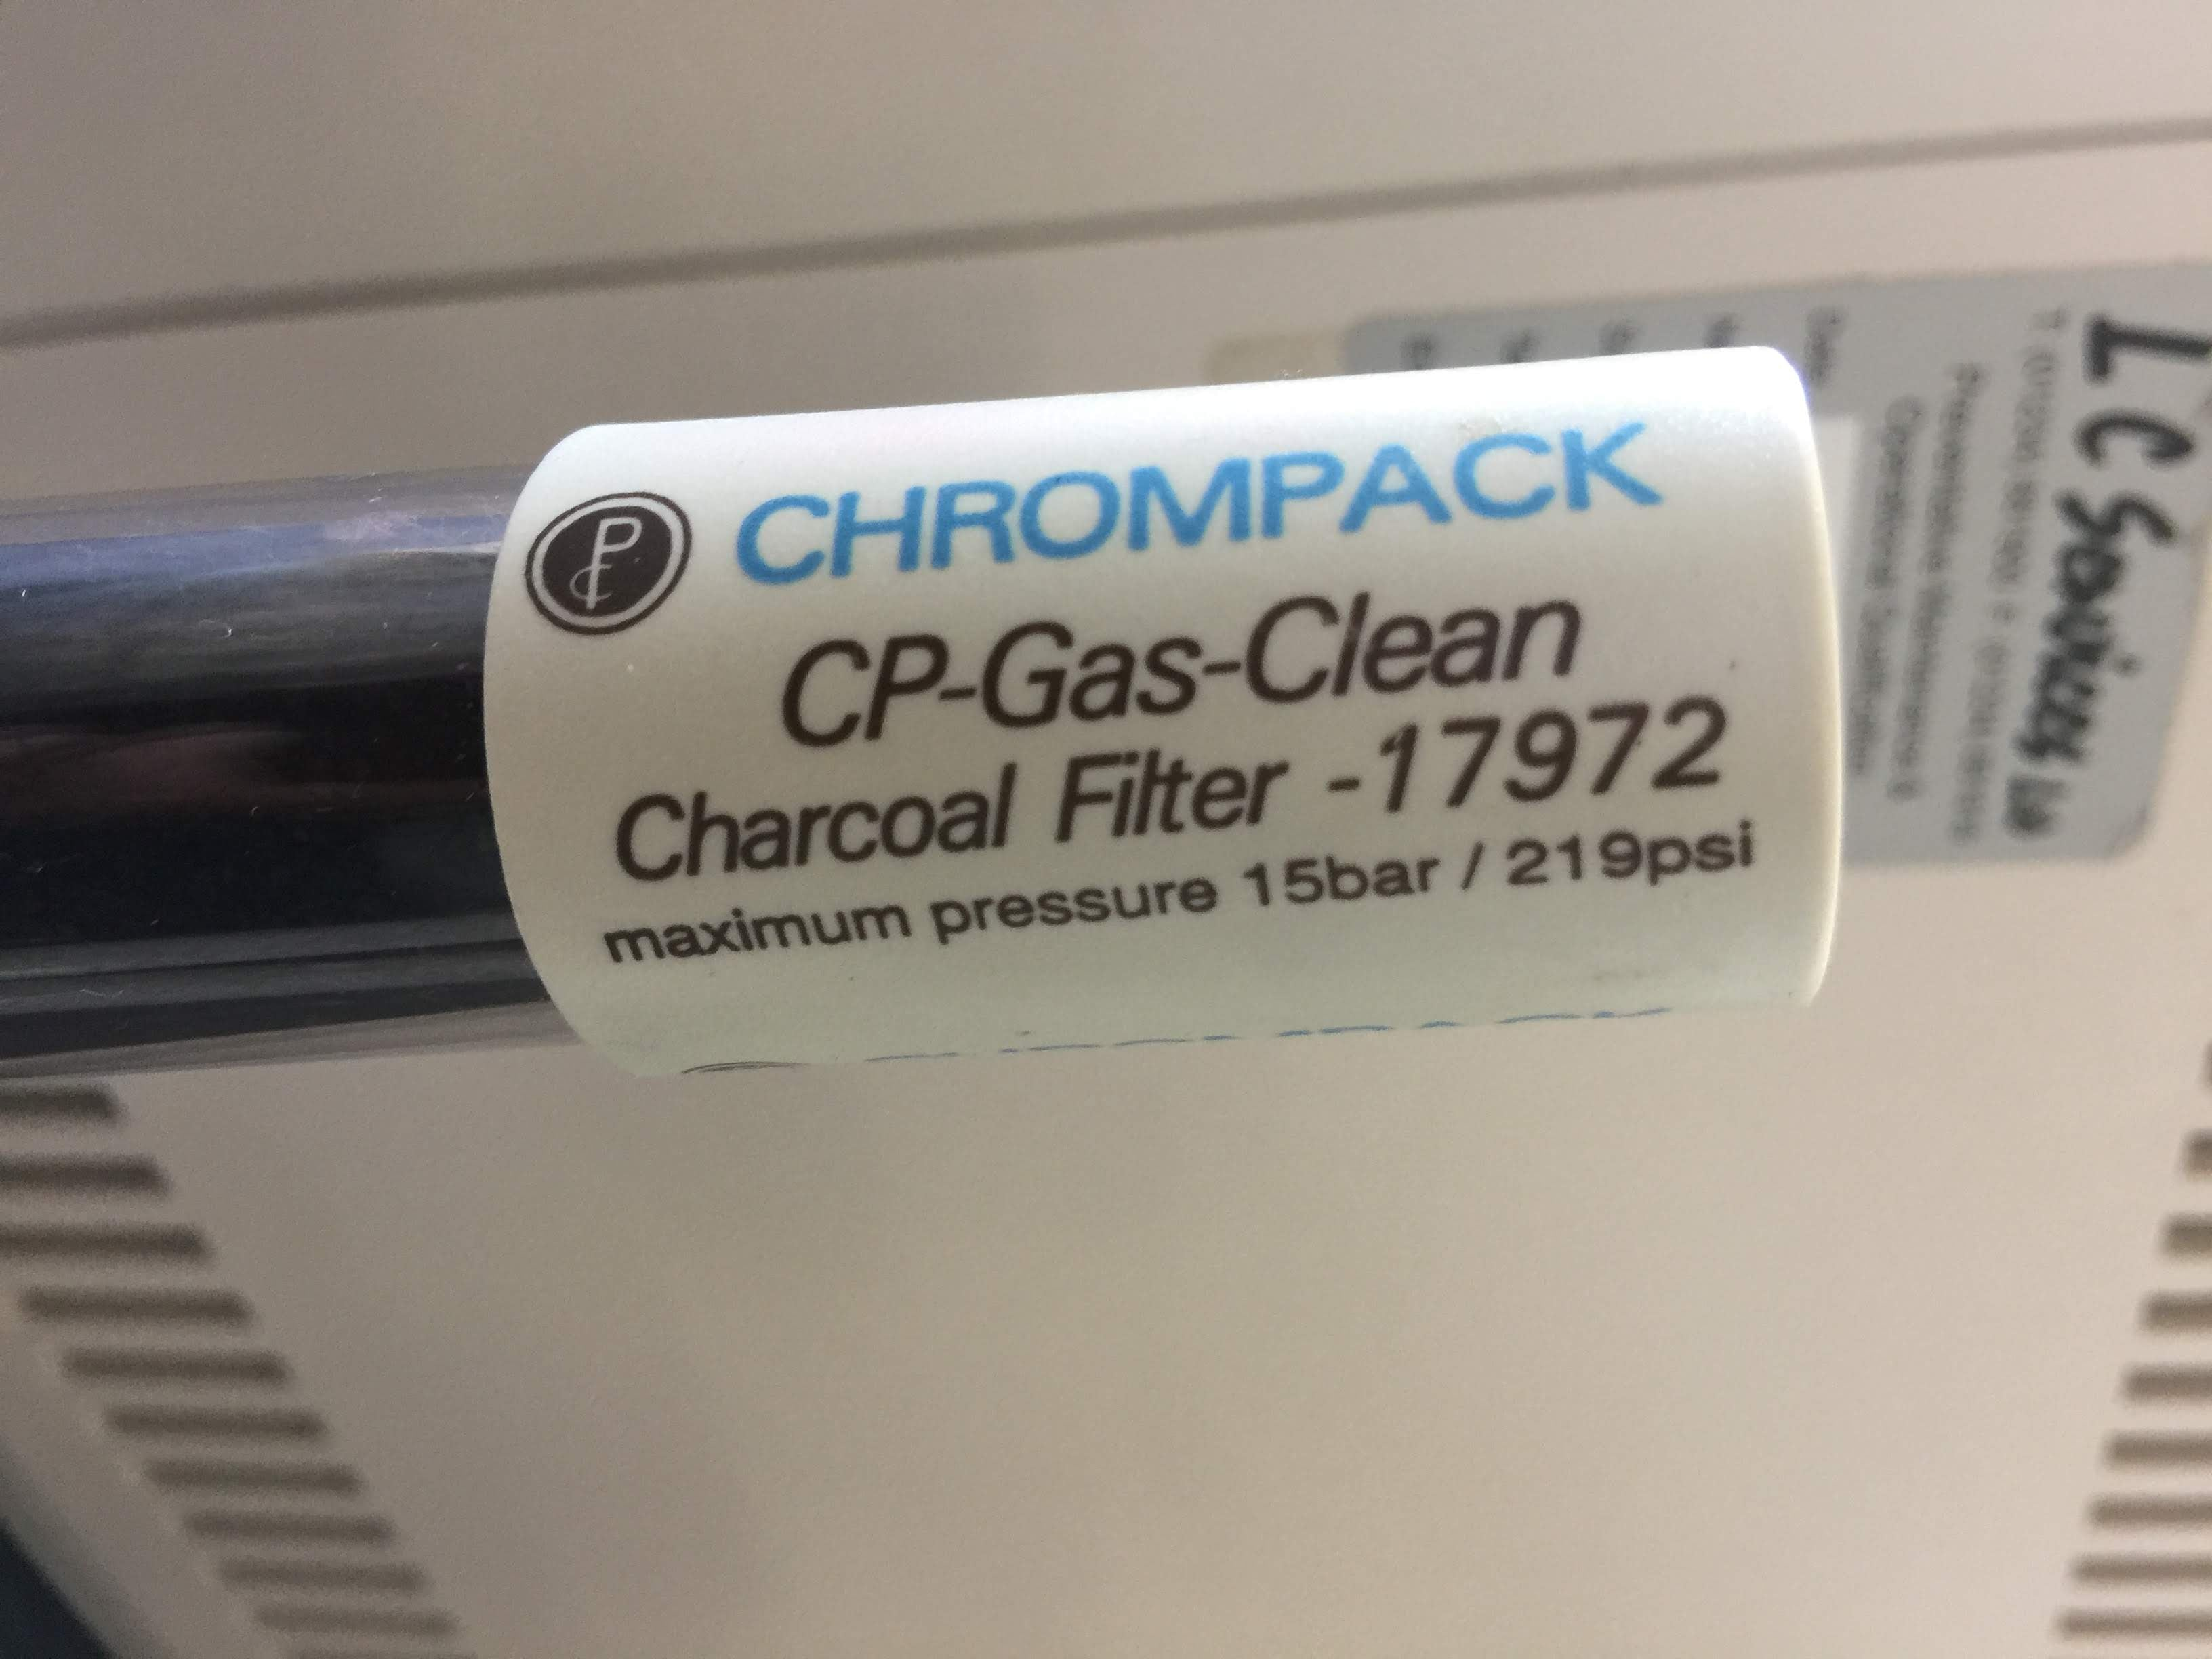 Chrompack CP-Gas-Clean Charcoal Filter